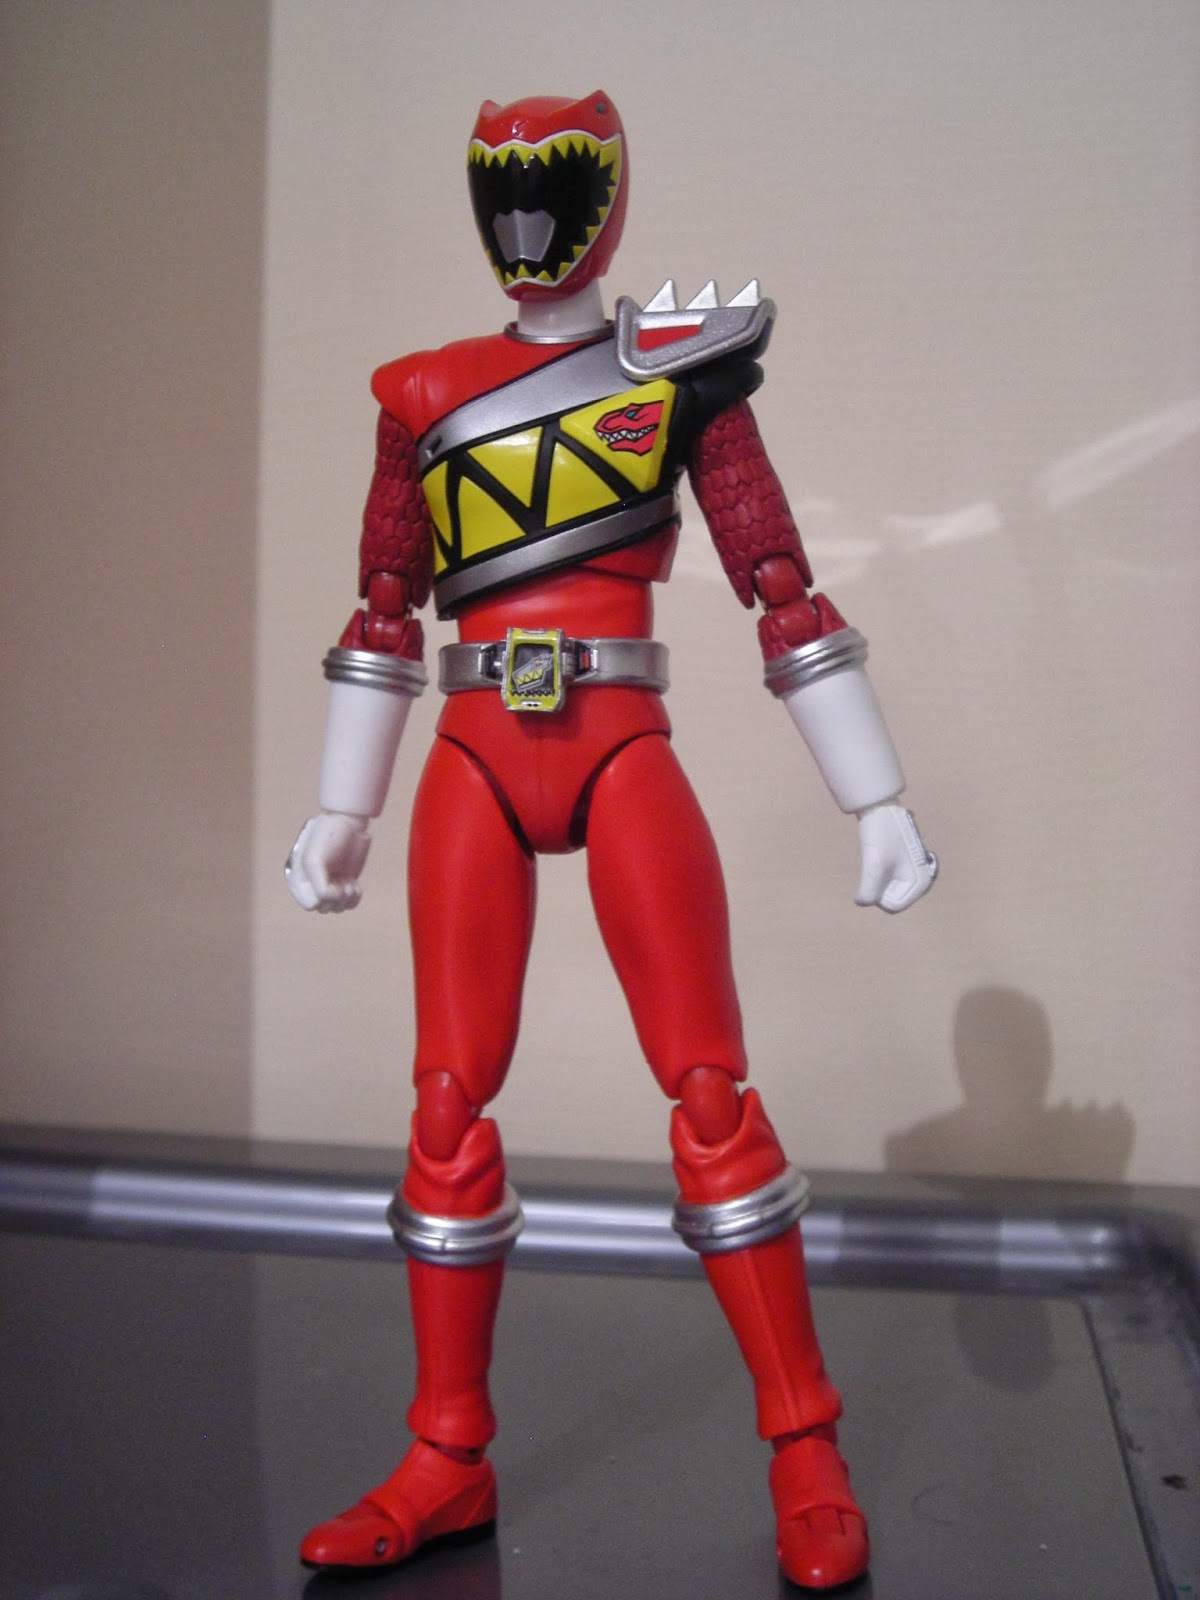 S.H.Figuarts SHF kyoryu red zyuden sentai kyoryuger Action figure